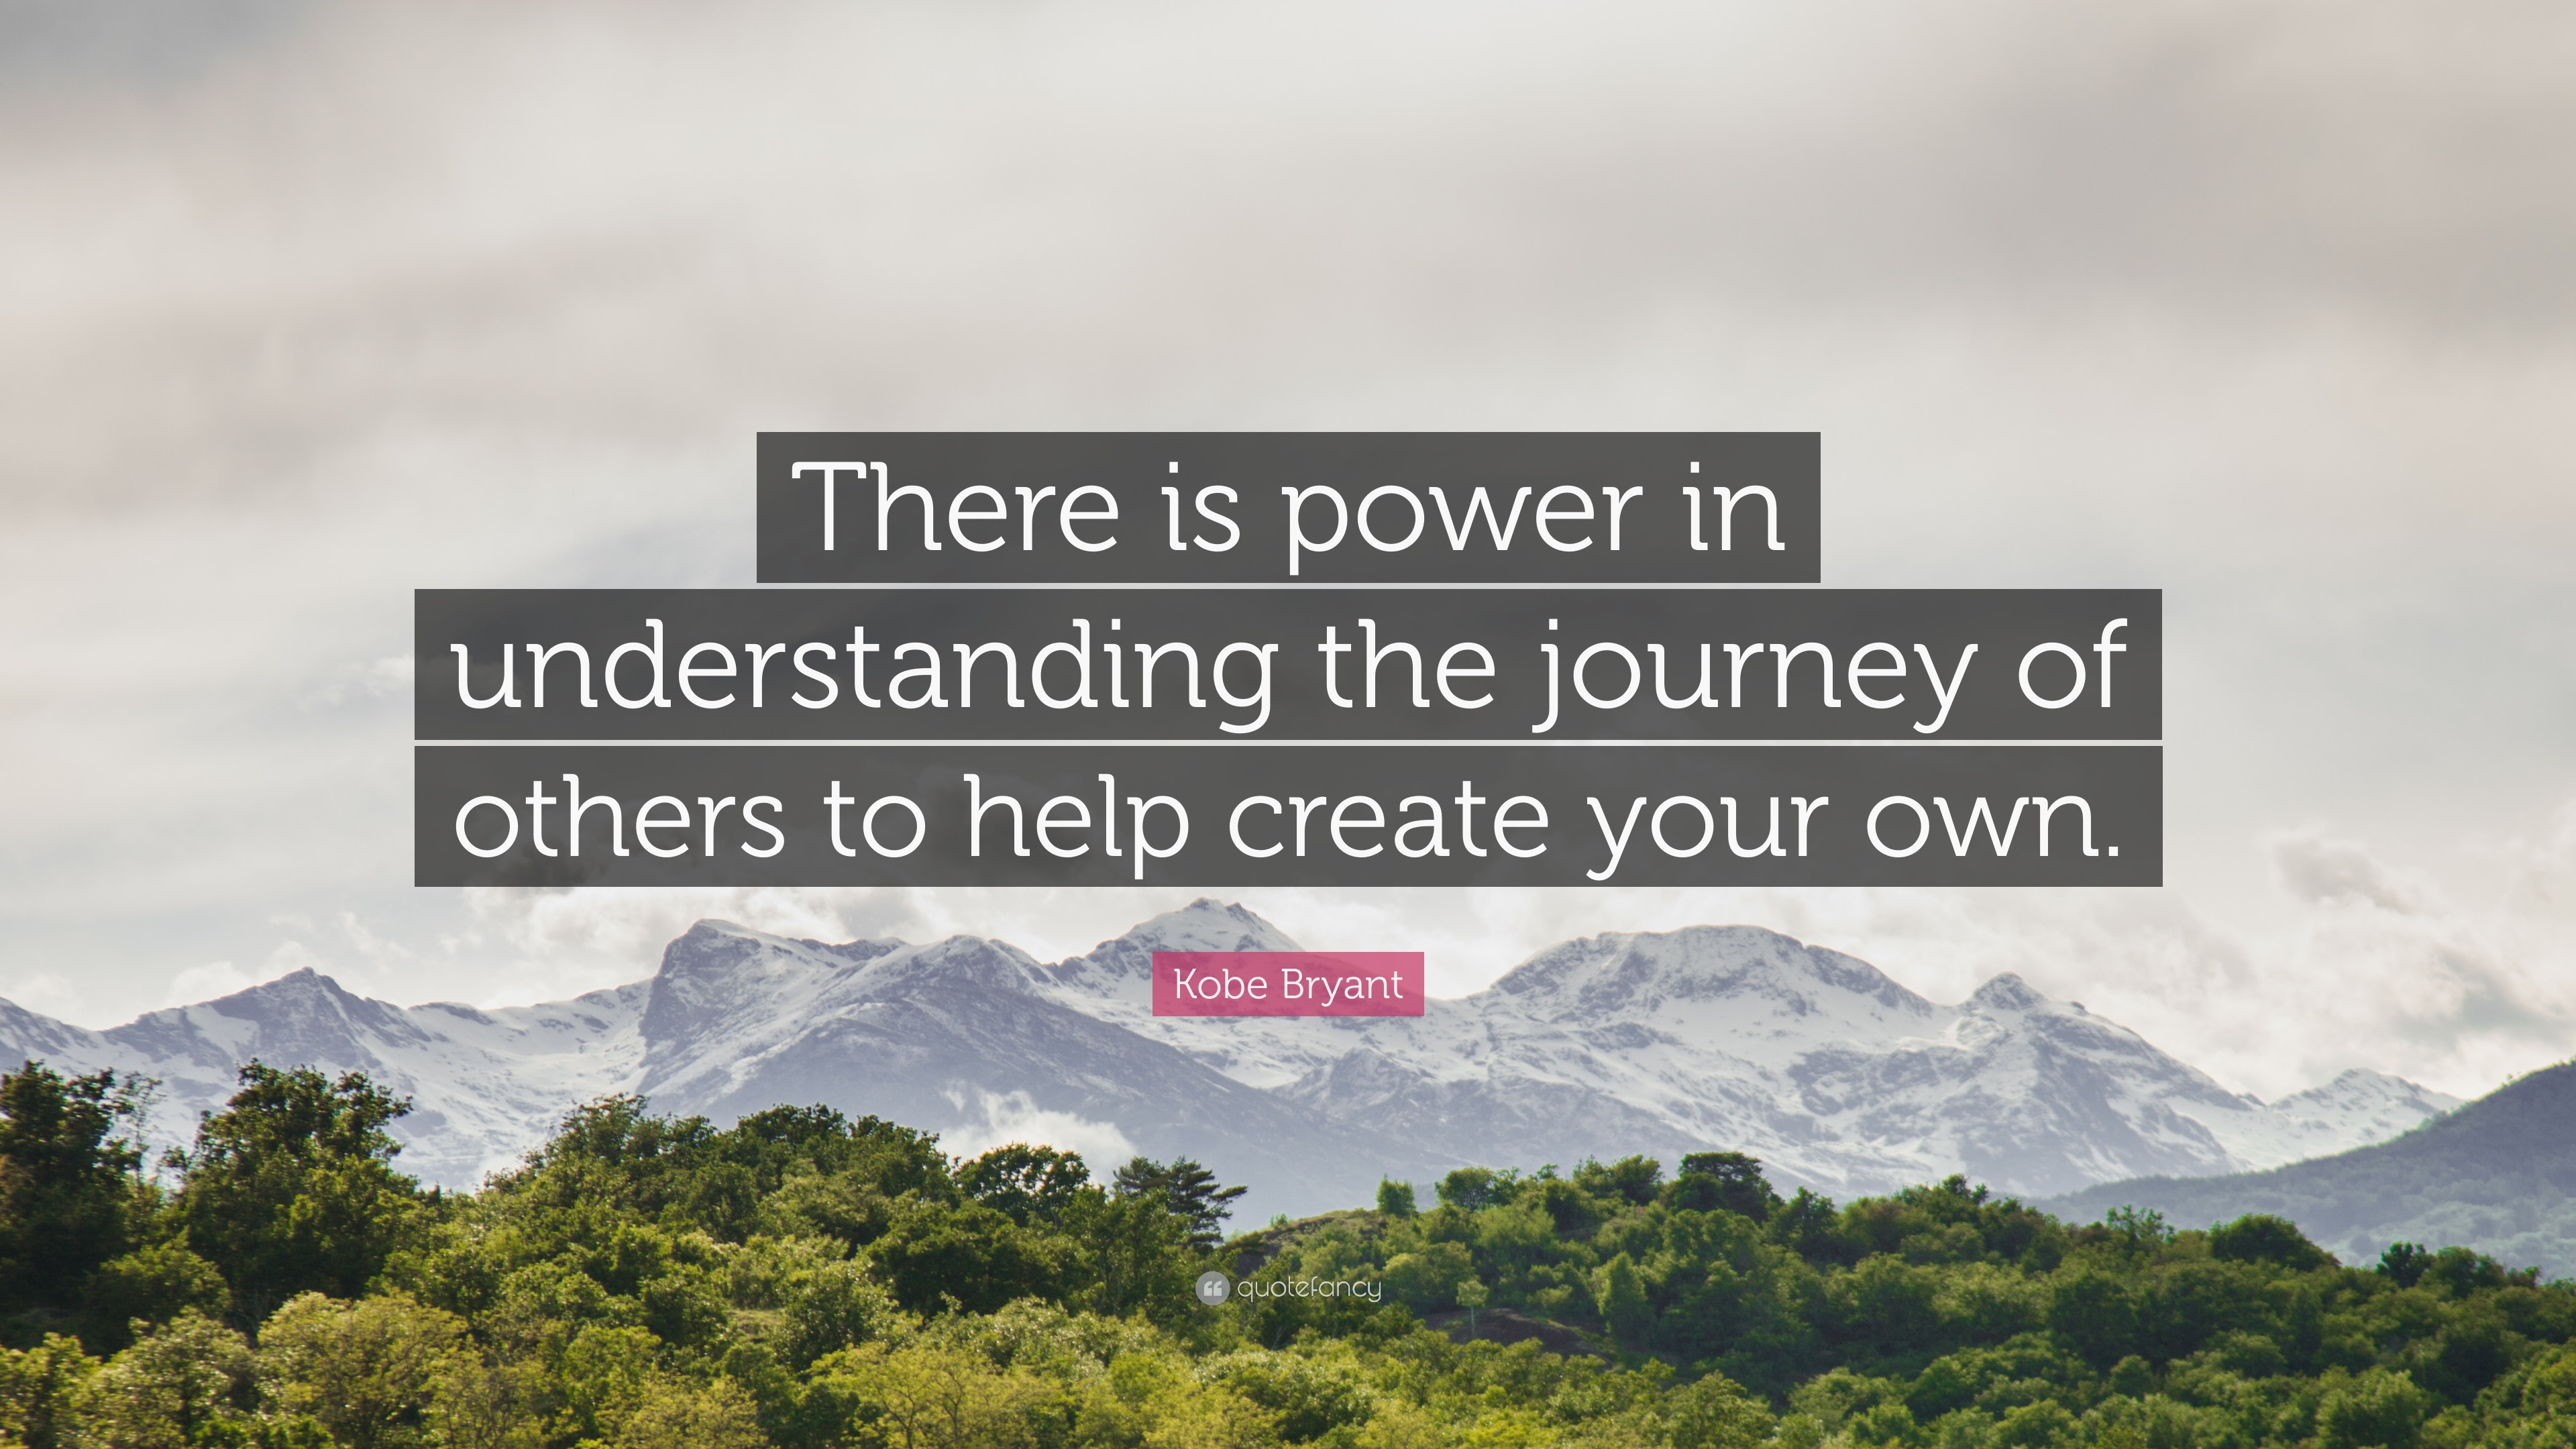 Kobe Bryant Quote There Is Power In Understanding The Journey Of